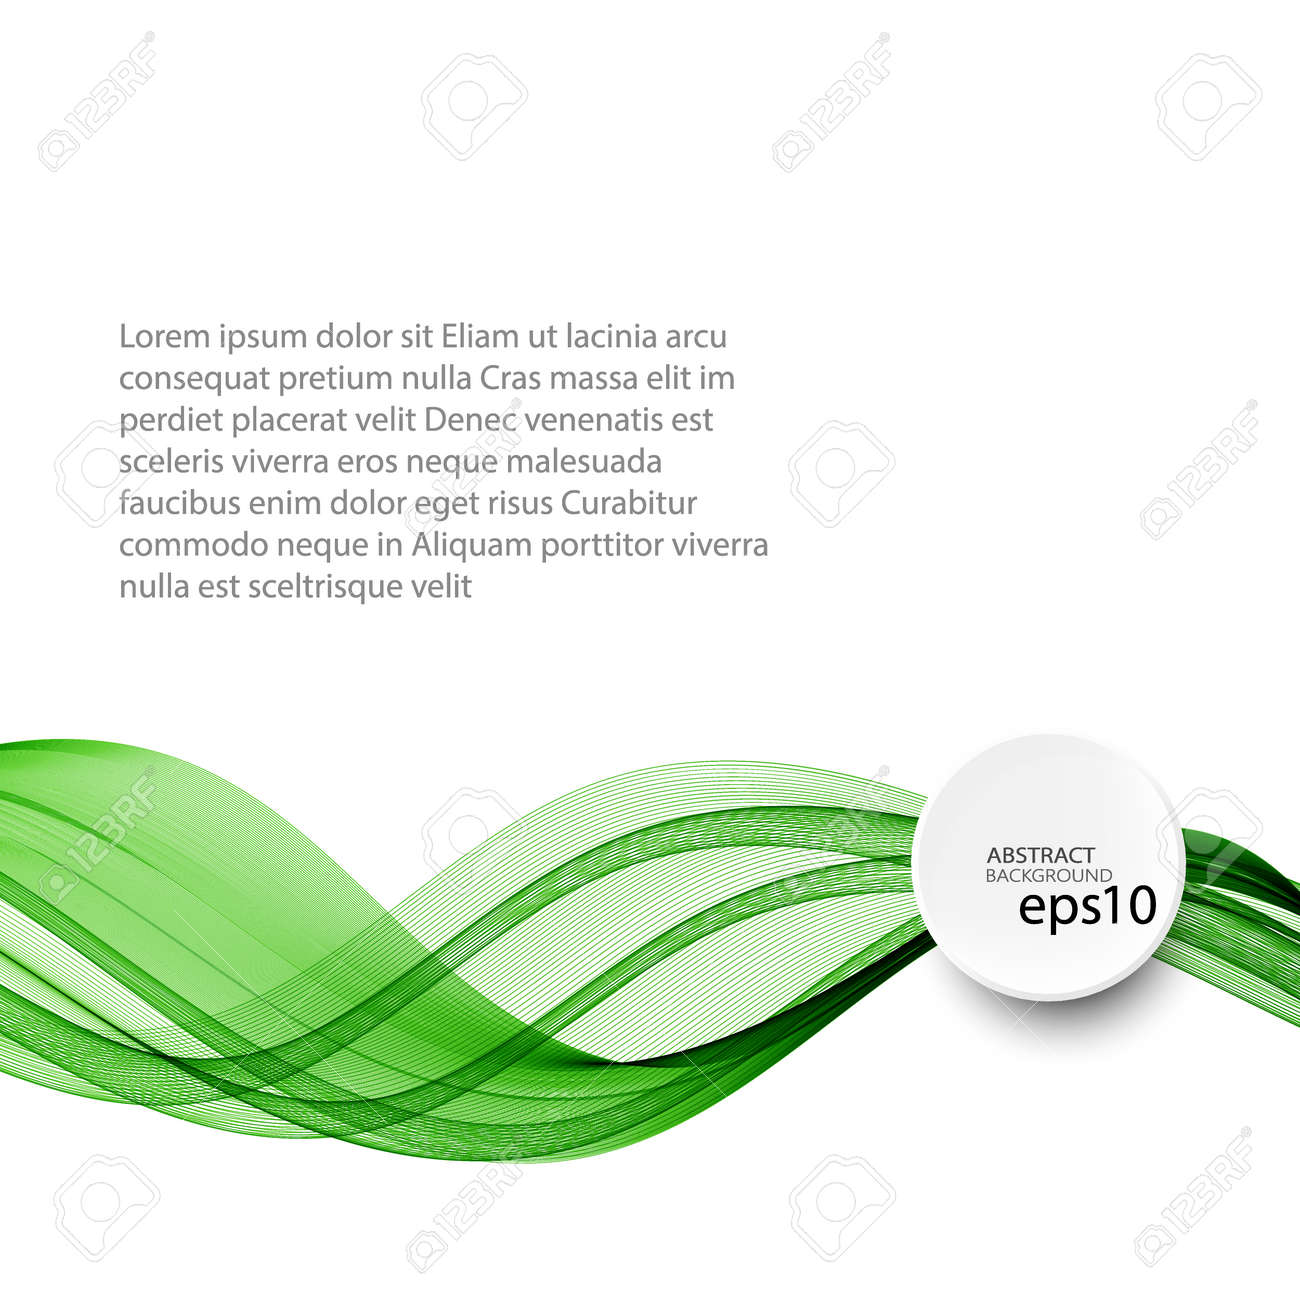 Abstract green wave vector background, horizontal wavy wave lines on white background eps10 - 150398294